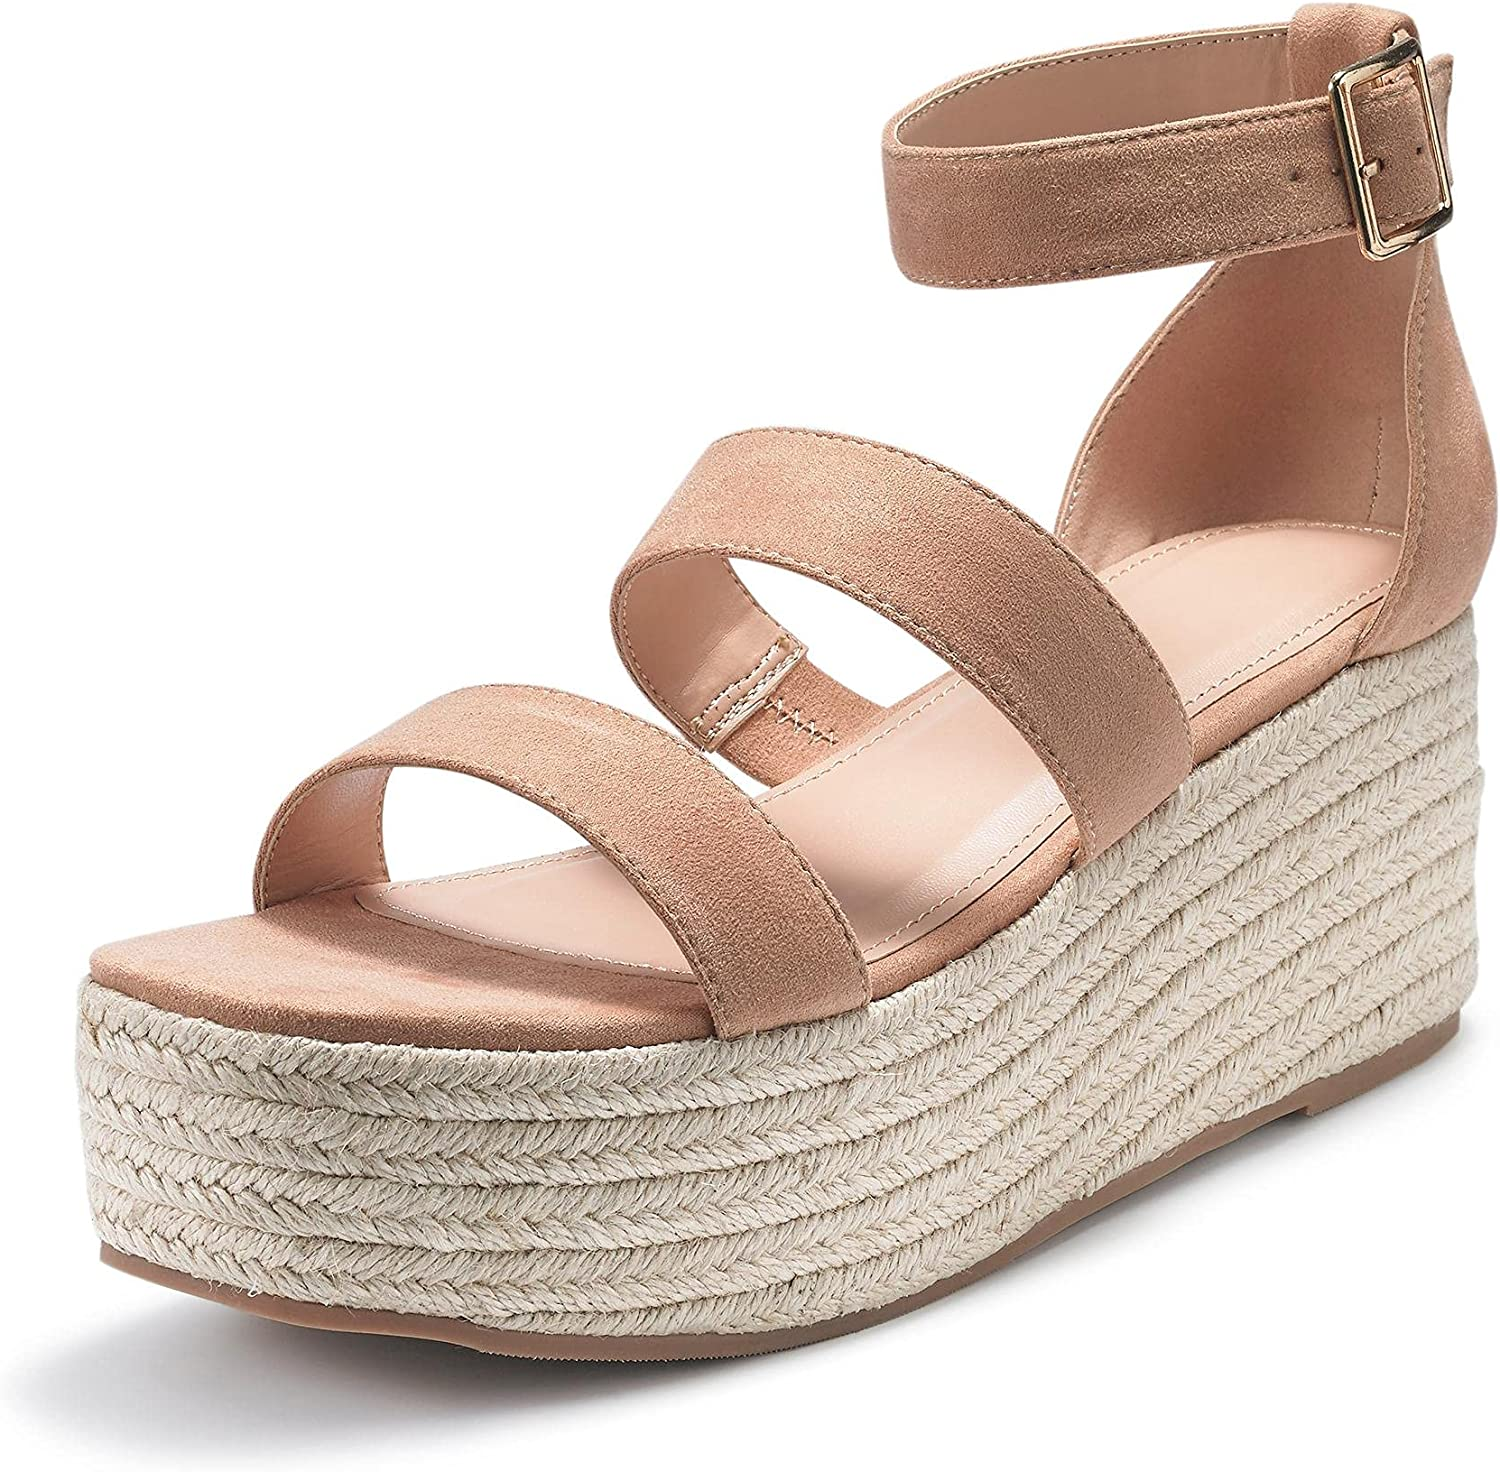 Liyuandian Sale price Womens Open Toe OFFicial mail order Espadrille Ankle Up Strap Boho Lace R